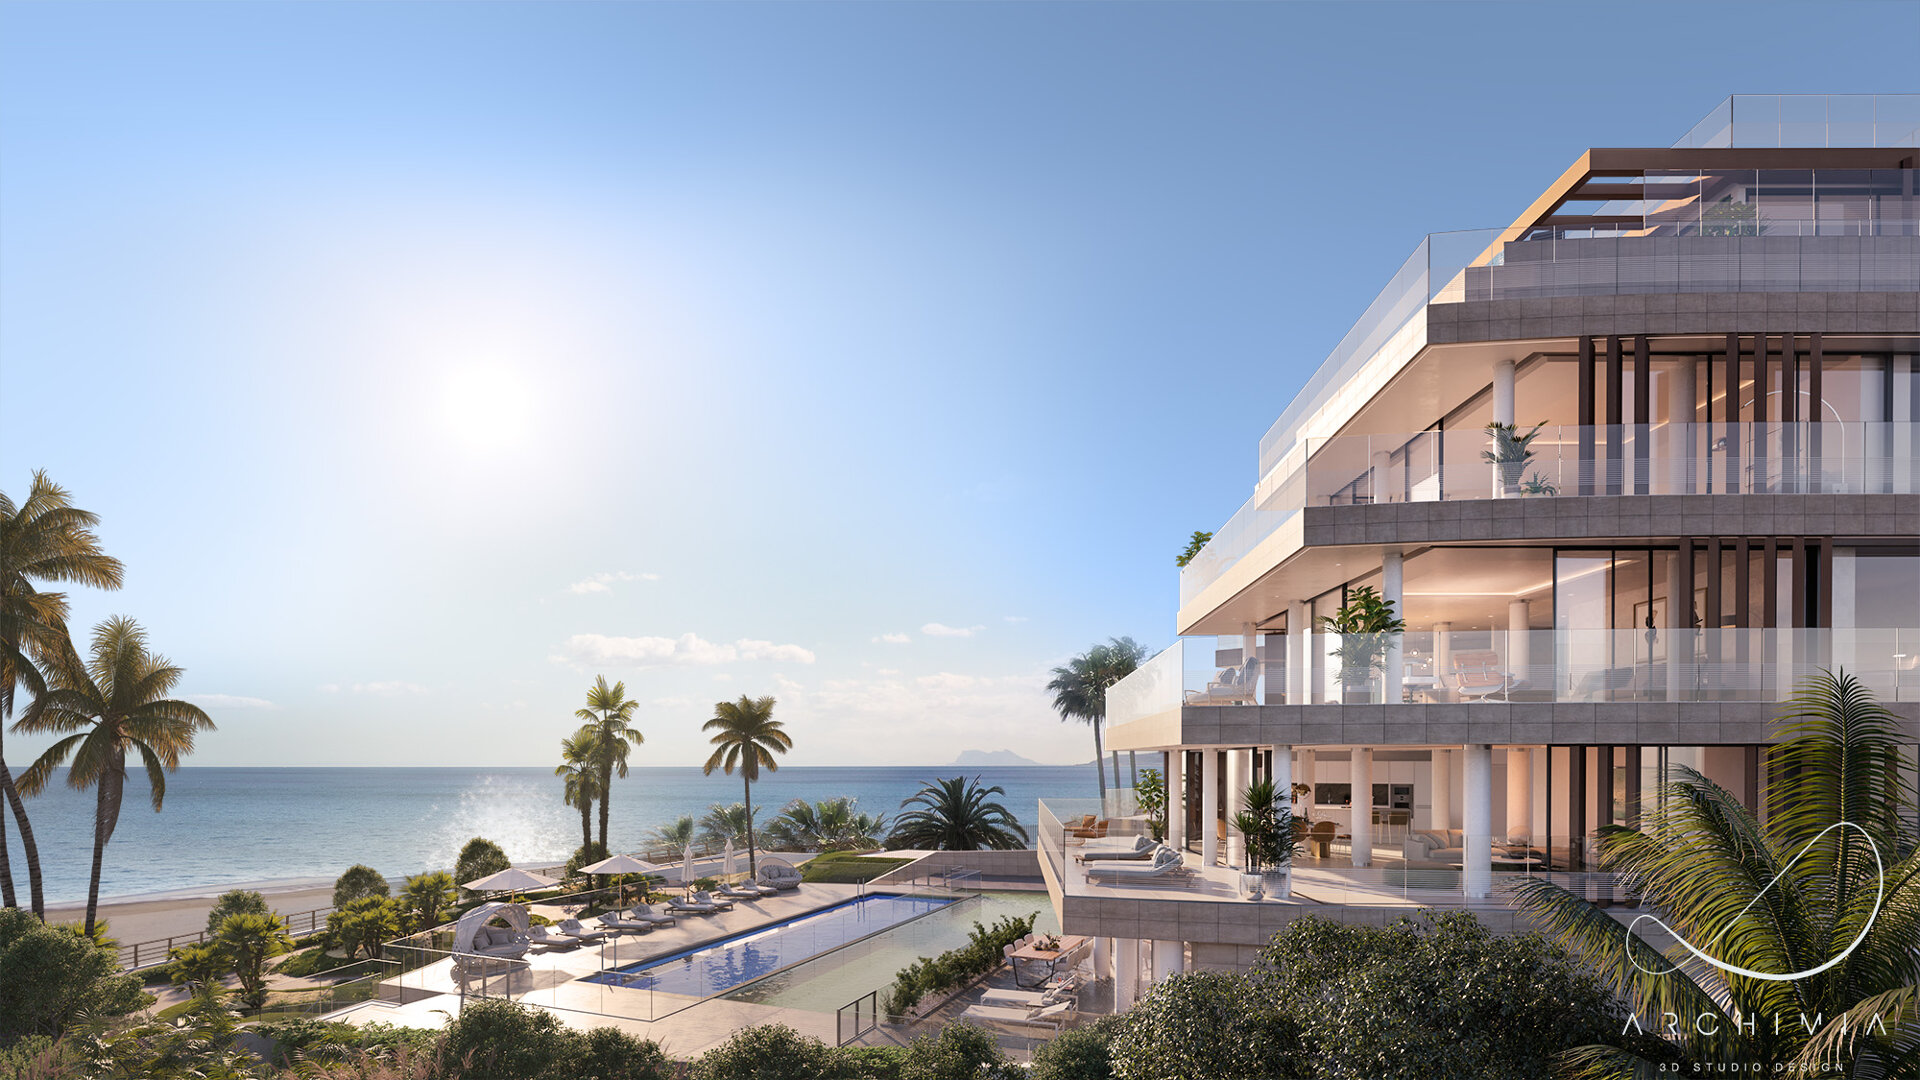 Spectacular Beach Front apartment with wrap around large terrace in Estepona offering privacy and amazing panoramic sea views!